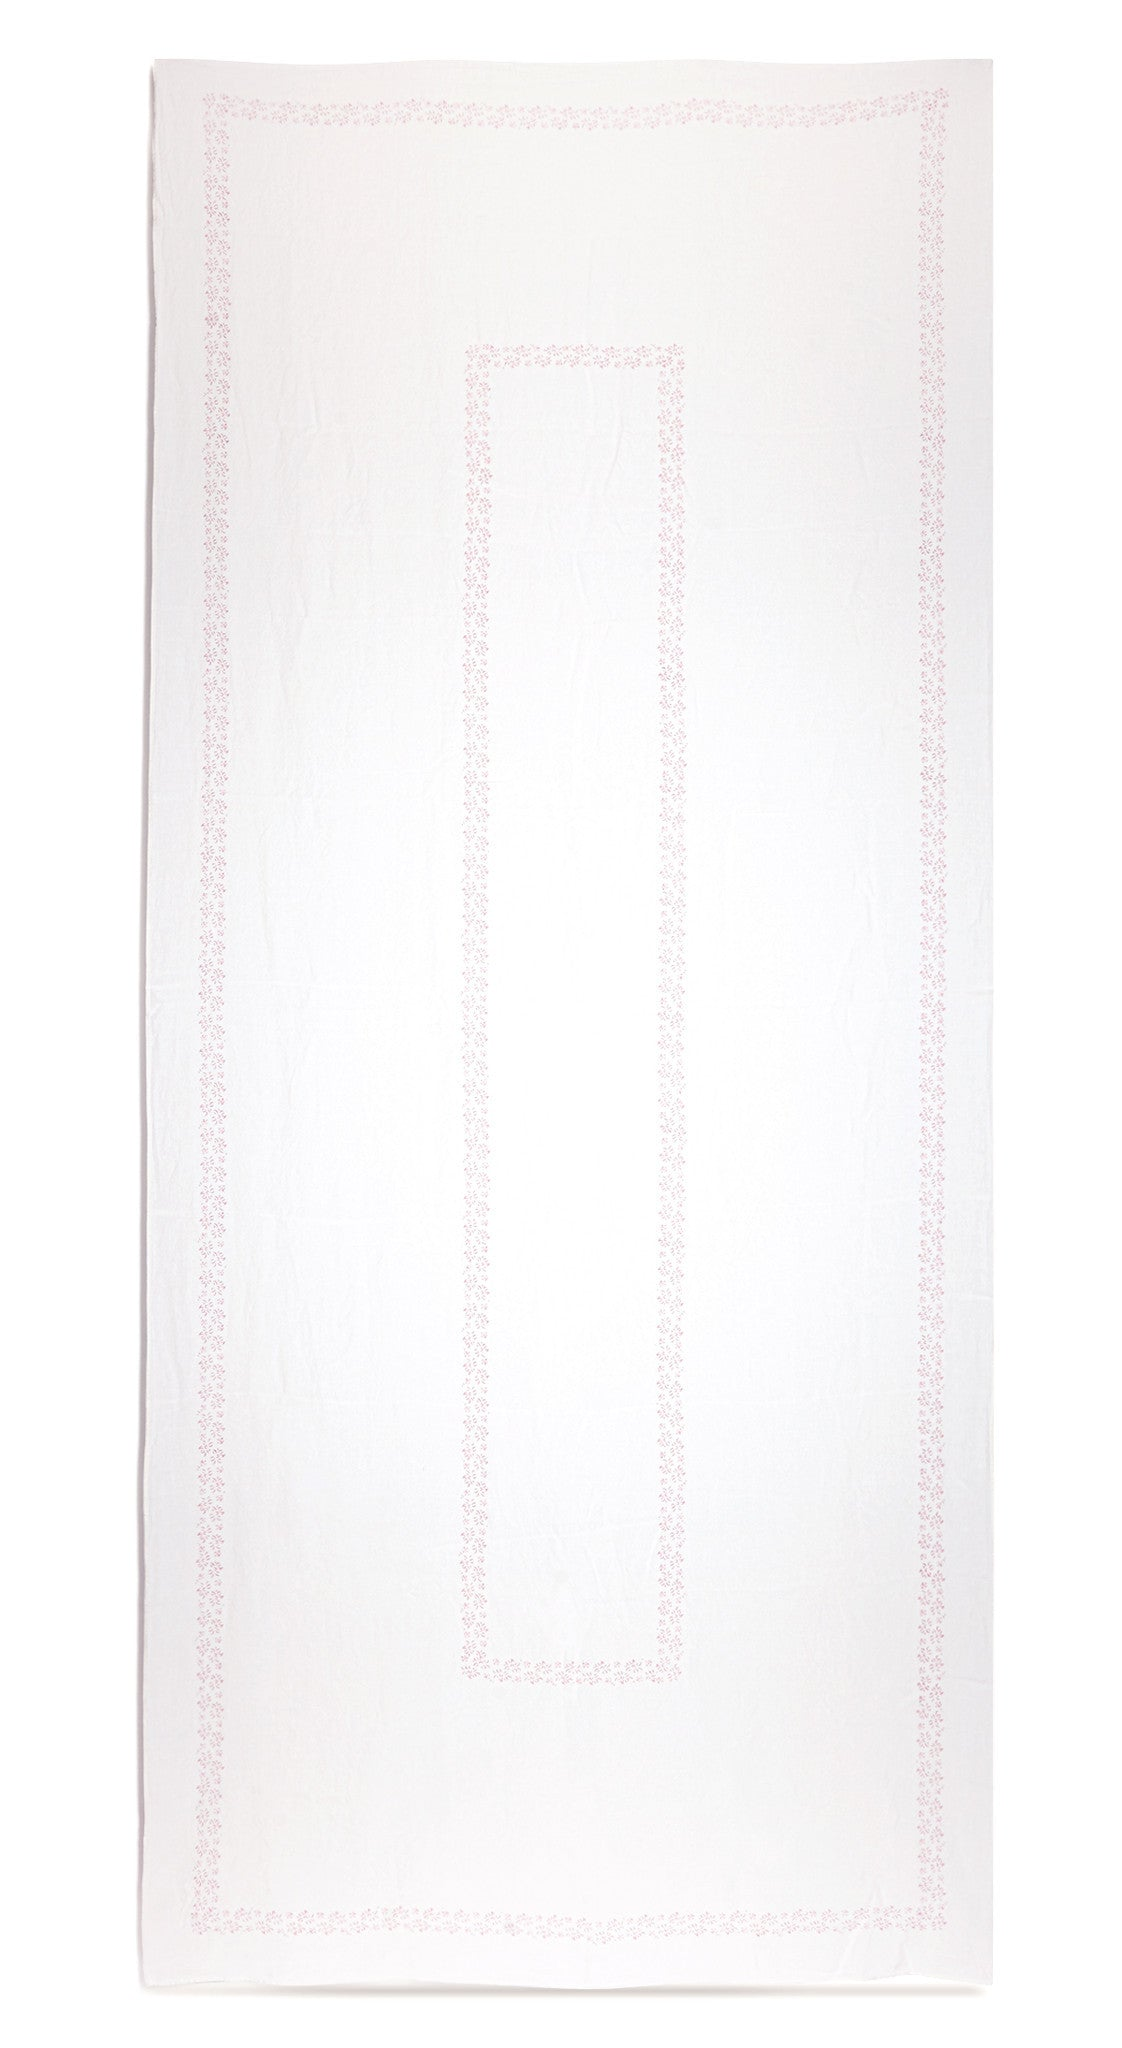 Bernadette's Framed Flower Linen Tablecloth in Rose Pink